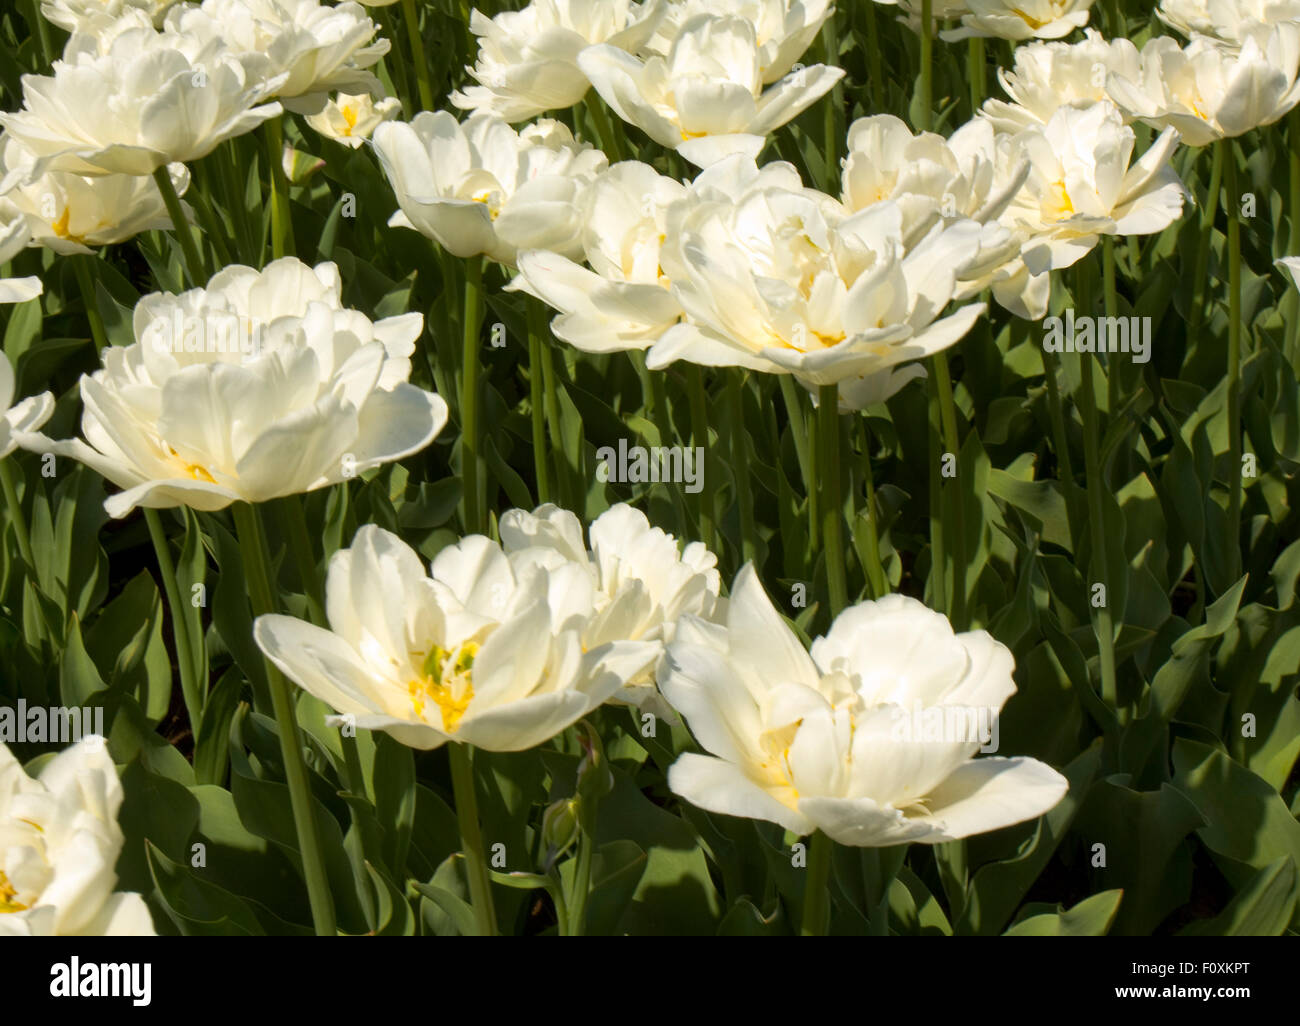 Flower bed with white tulips, horizonal. - Stock Image